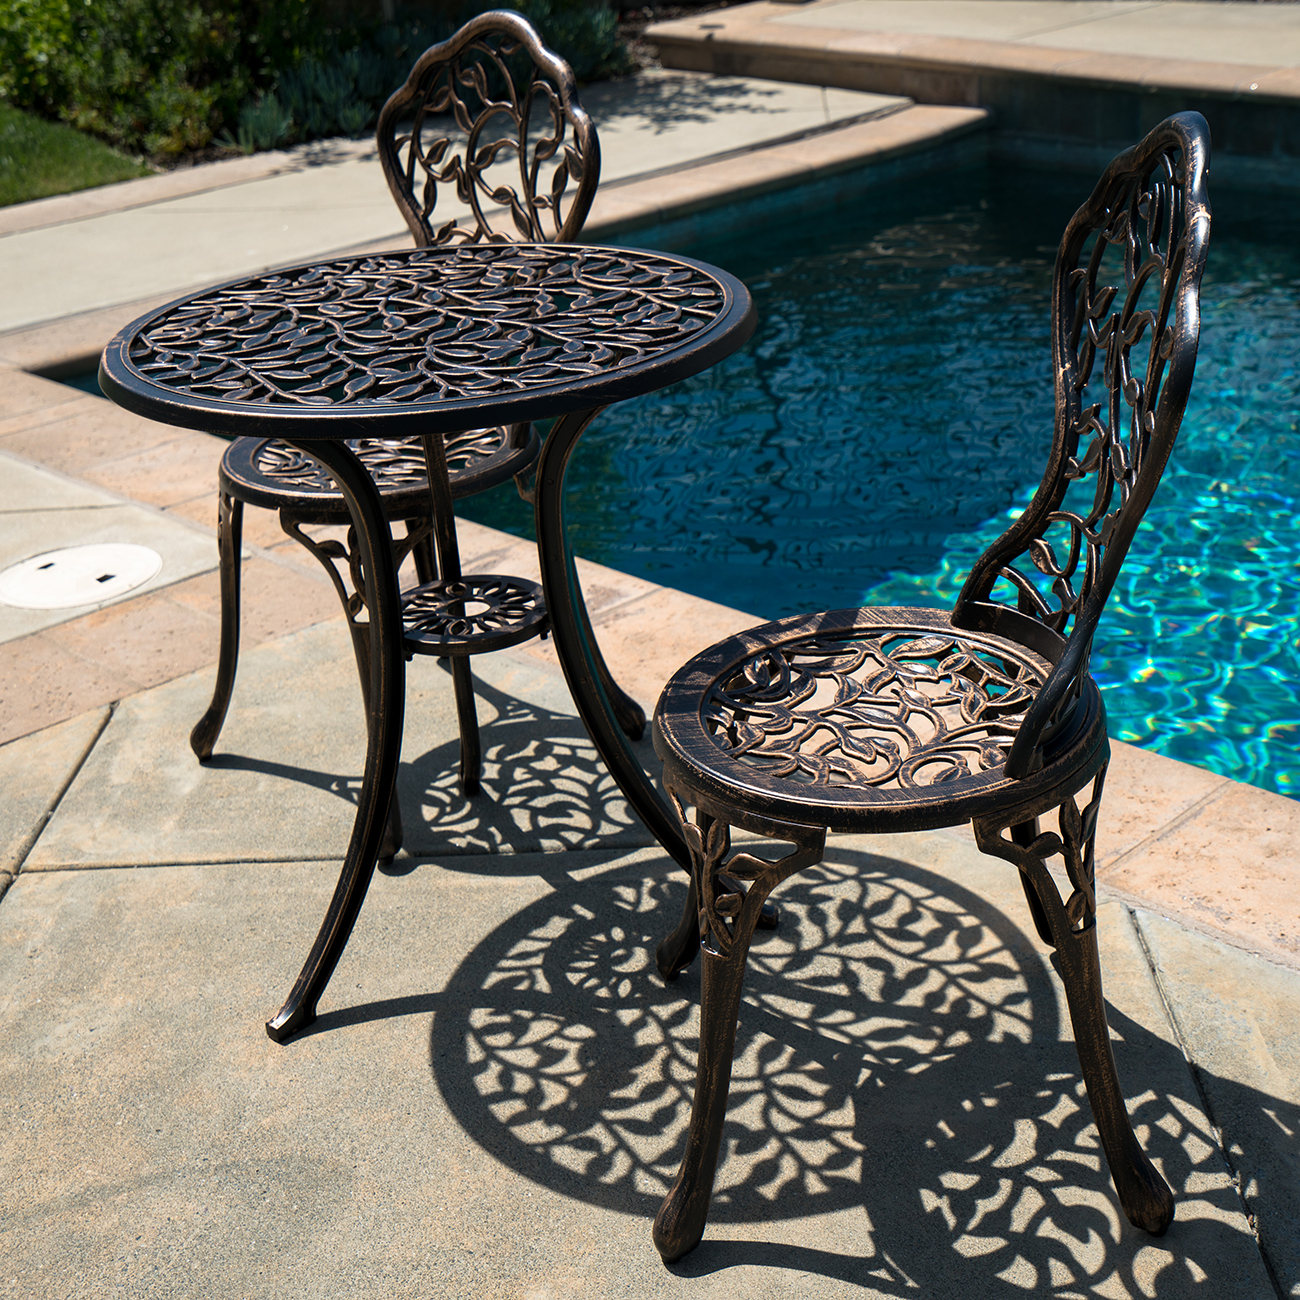 3pc Bistro Set In Antique Outdoor Patio Furniture Leaf Design Cast